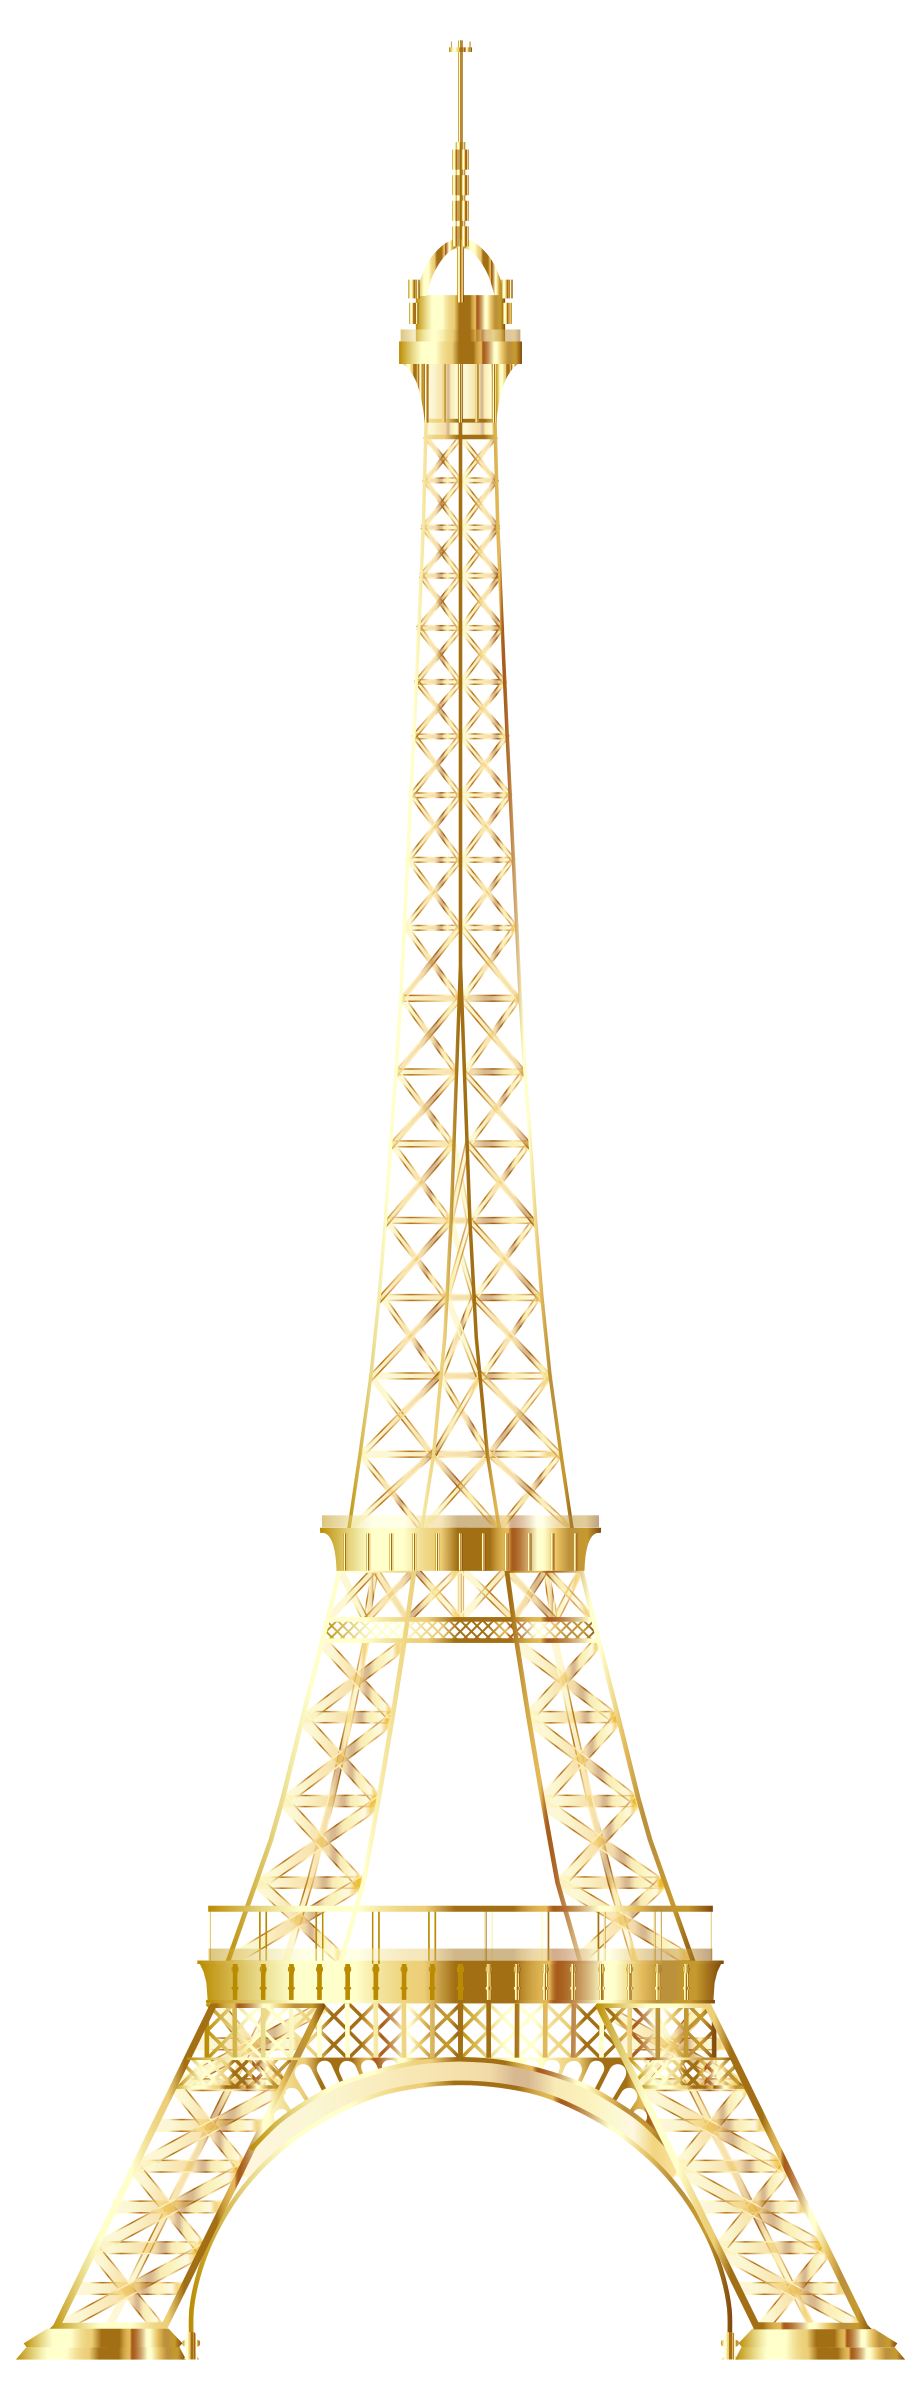 Clipart - Eiffel Tower... Eiffel Tower Silhouette Pink